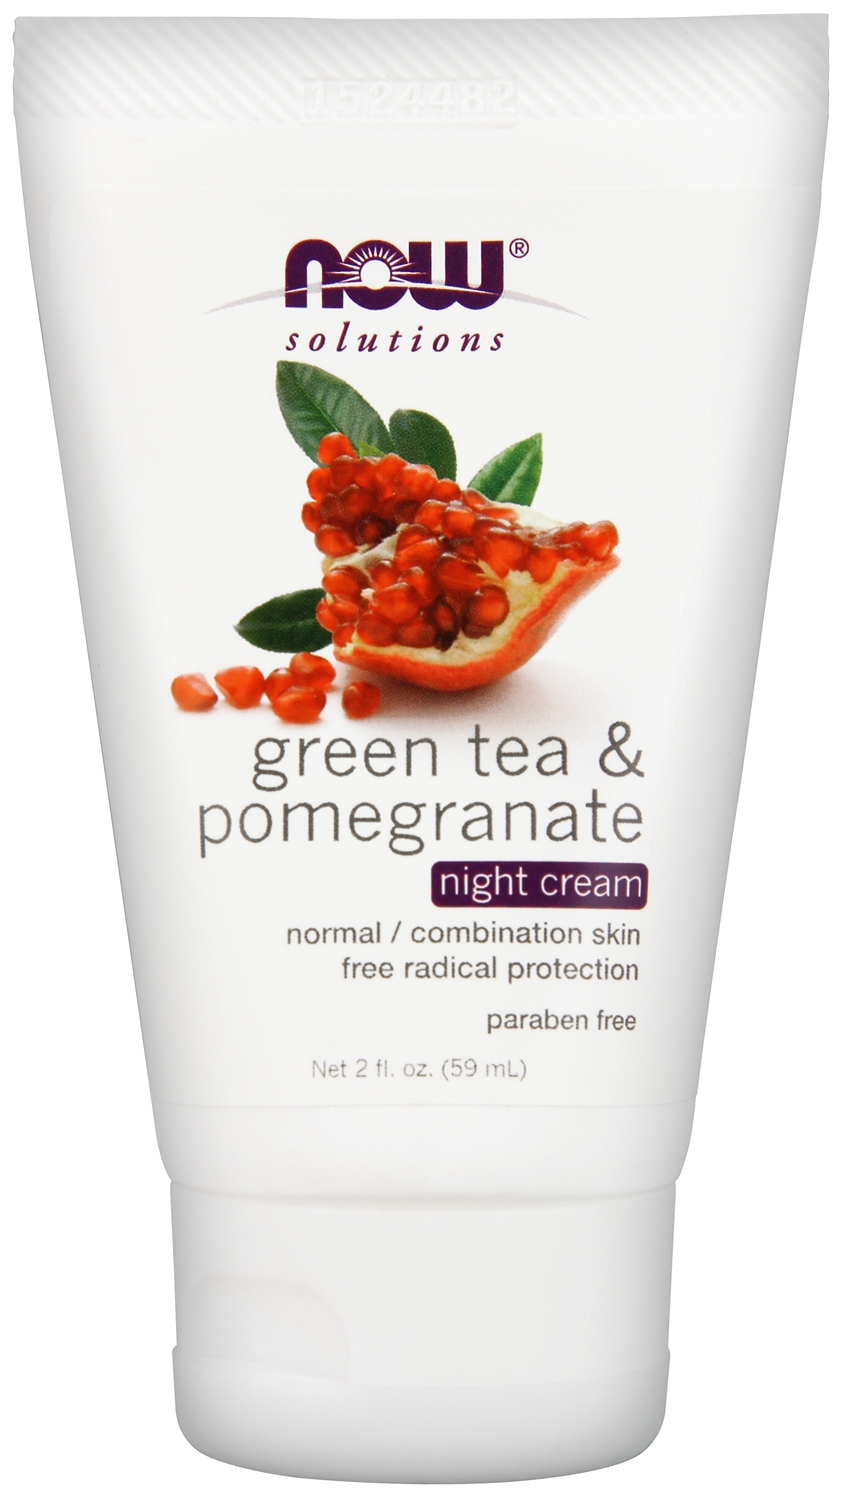 Green Tea & Pomegranate Night Cream 2 fl oz (60 ml) by NOW